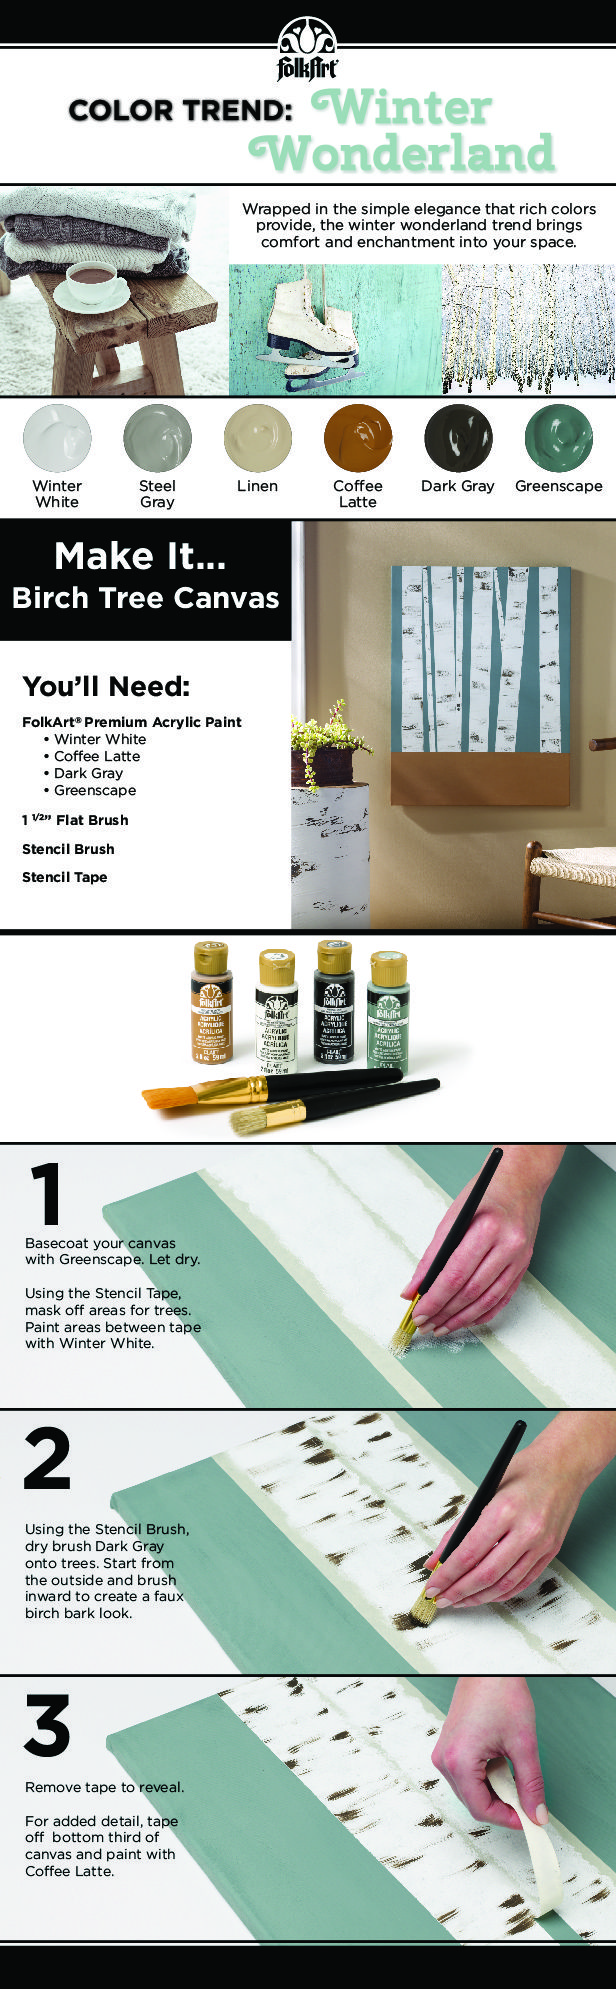 Create your own beautiful birch tree wall art following these easy steps! Painting for decoration has never been this easy!